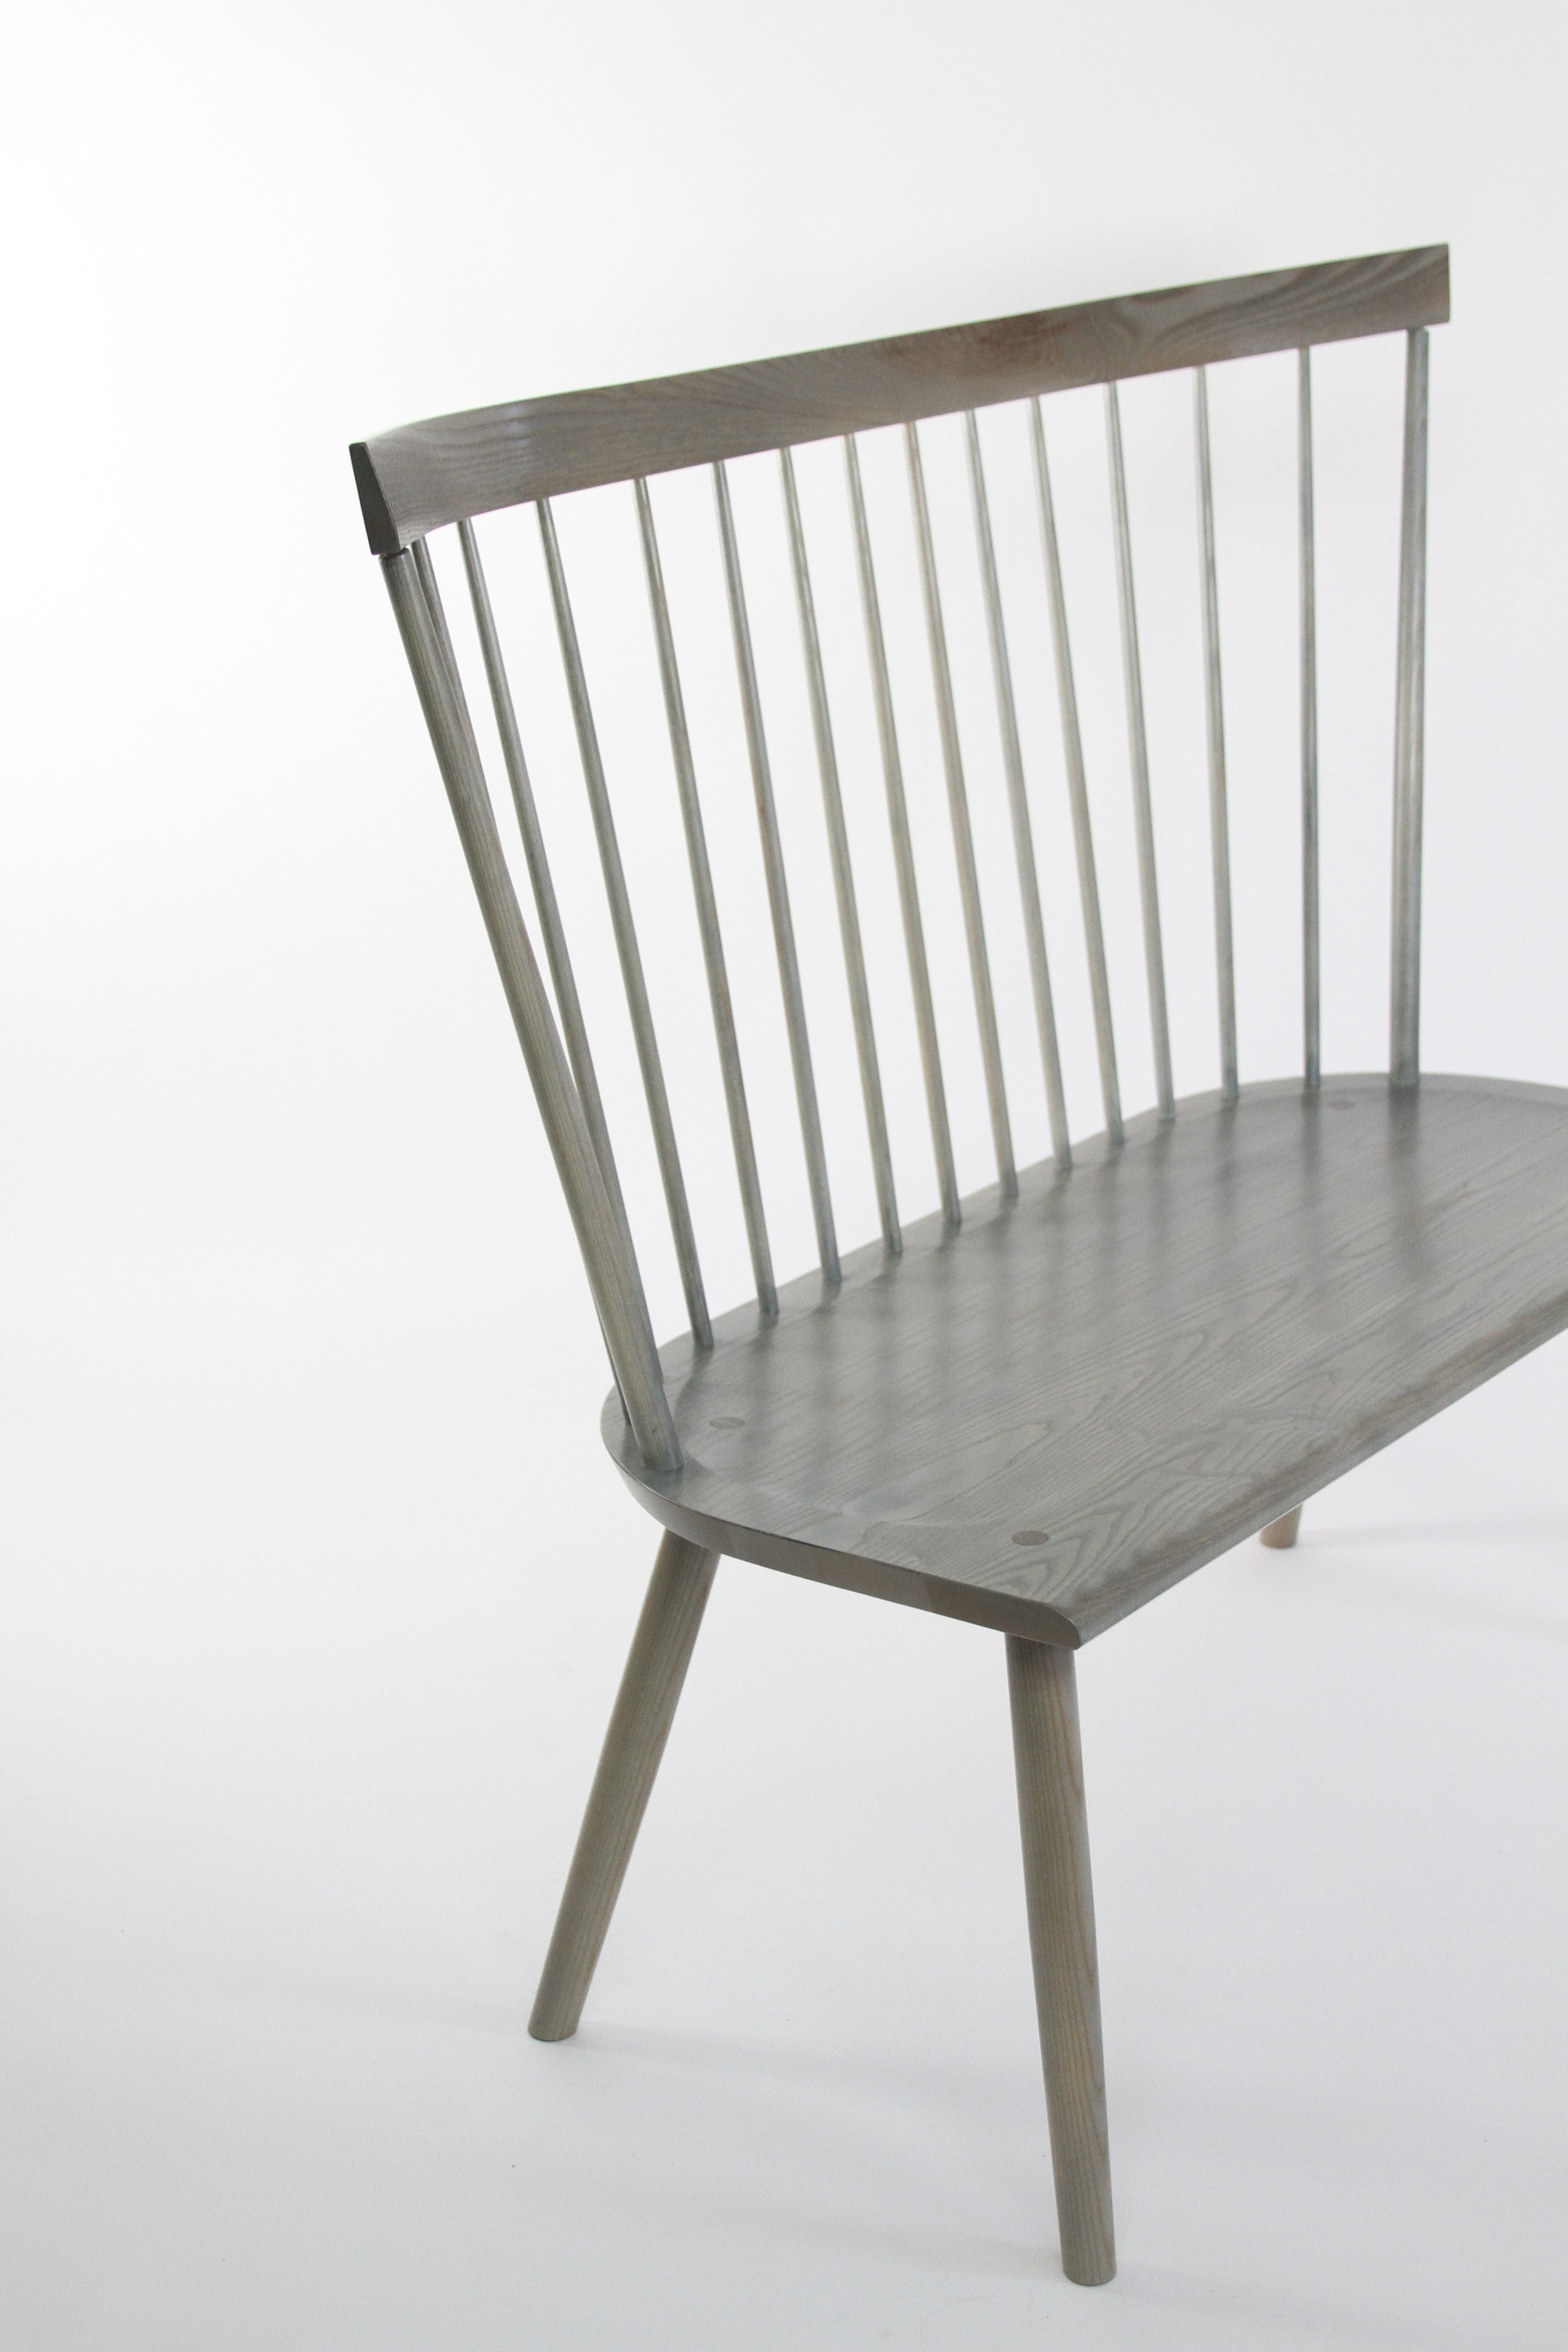 O&G Studio Colt High Back Settee Loveseat Entry Bench Windsor Chair Oyster Light Gray Grey Stain Ash